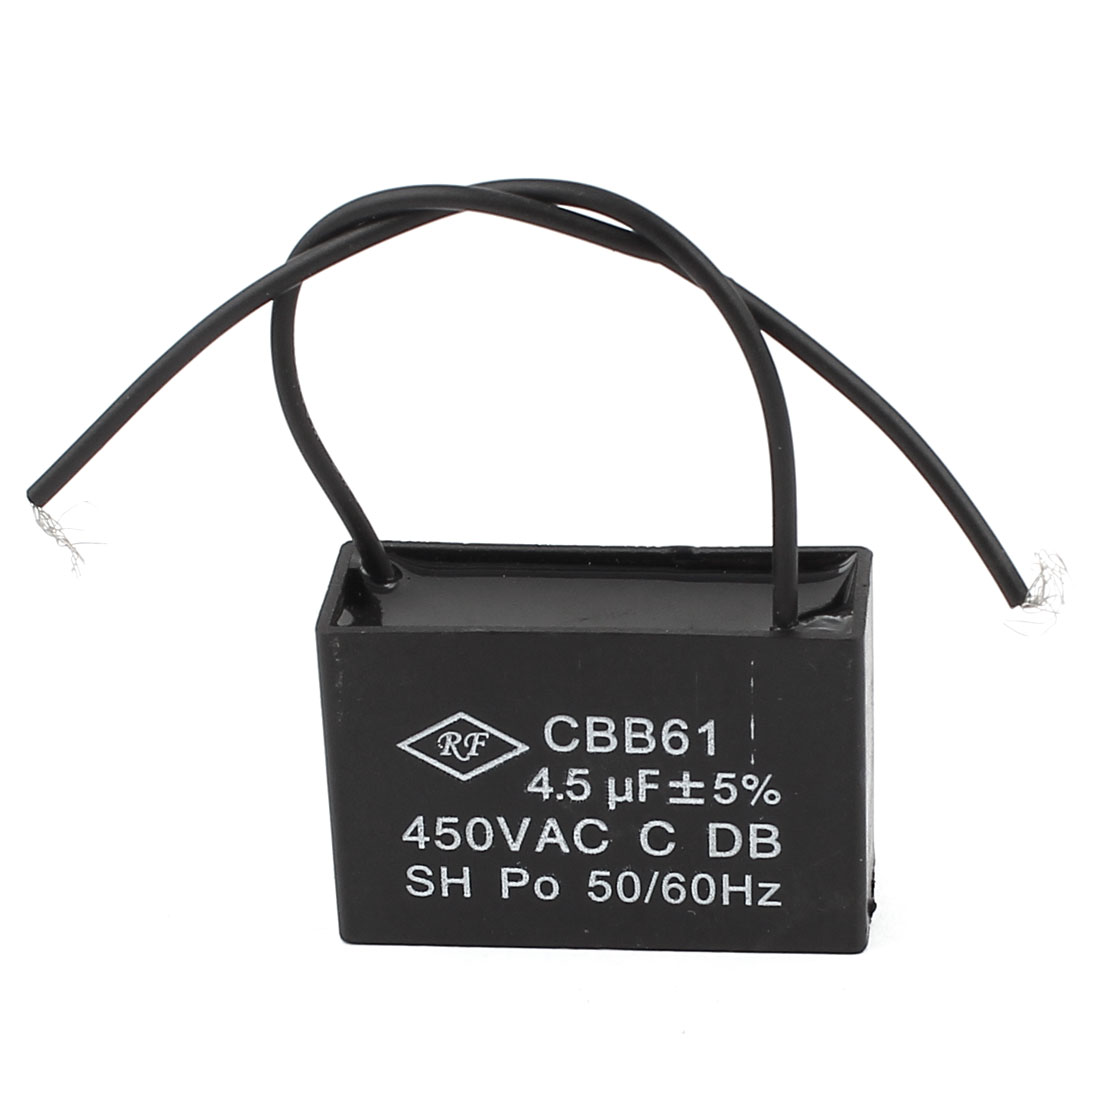 CBB61 AC 450V 4.5uF 50/60Hz SH Non Polar Fan Motor Run Capacitors